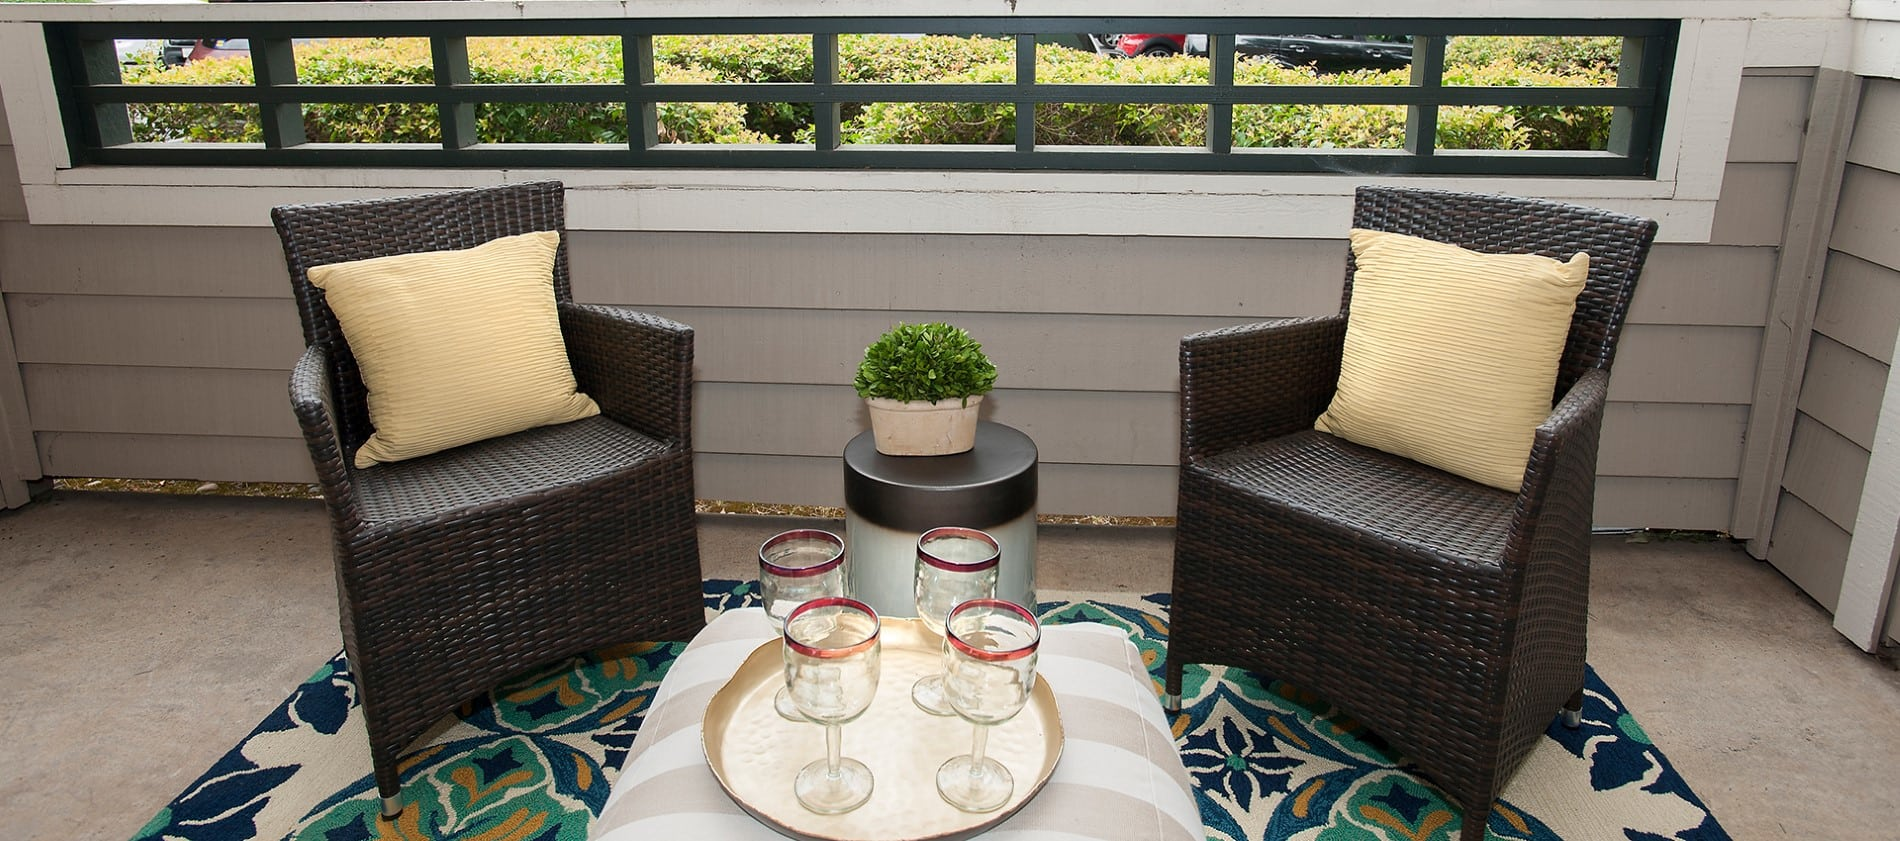 Patio at Reserve at Capital Center Apartment Homes in Rancho Cordova, CA